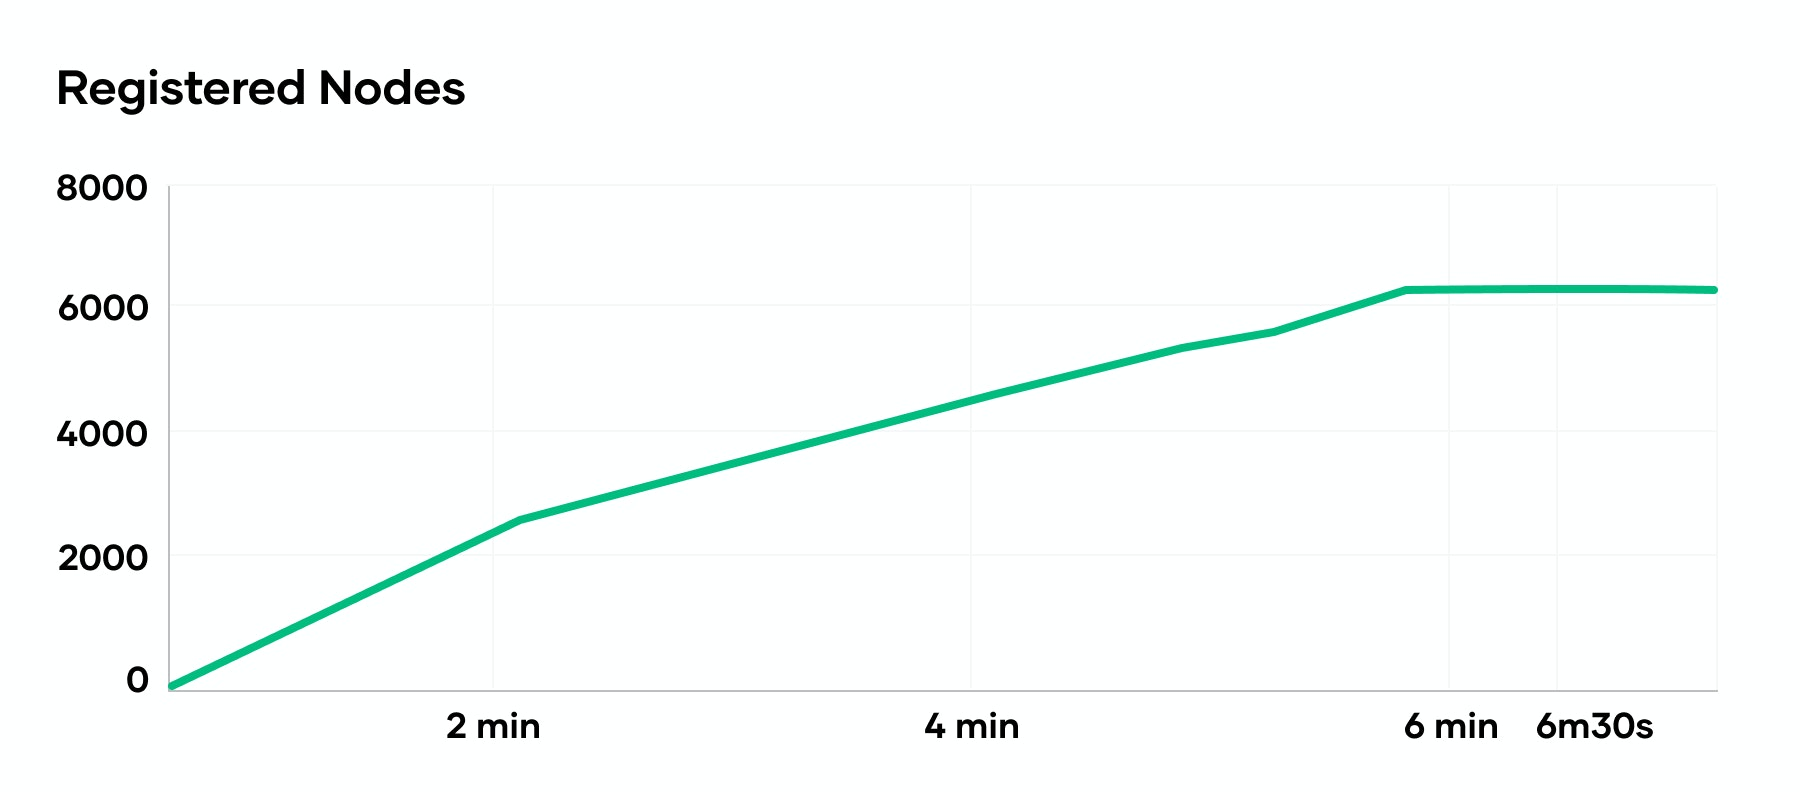 This diagram illustrates the launch rate of AWS EC2 instances